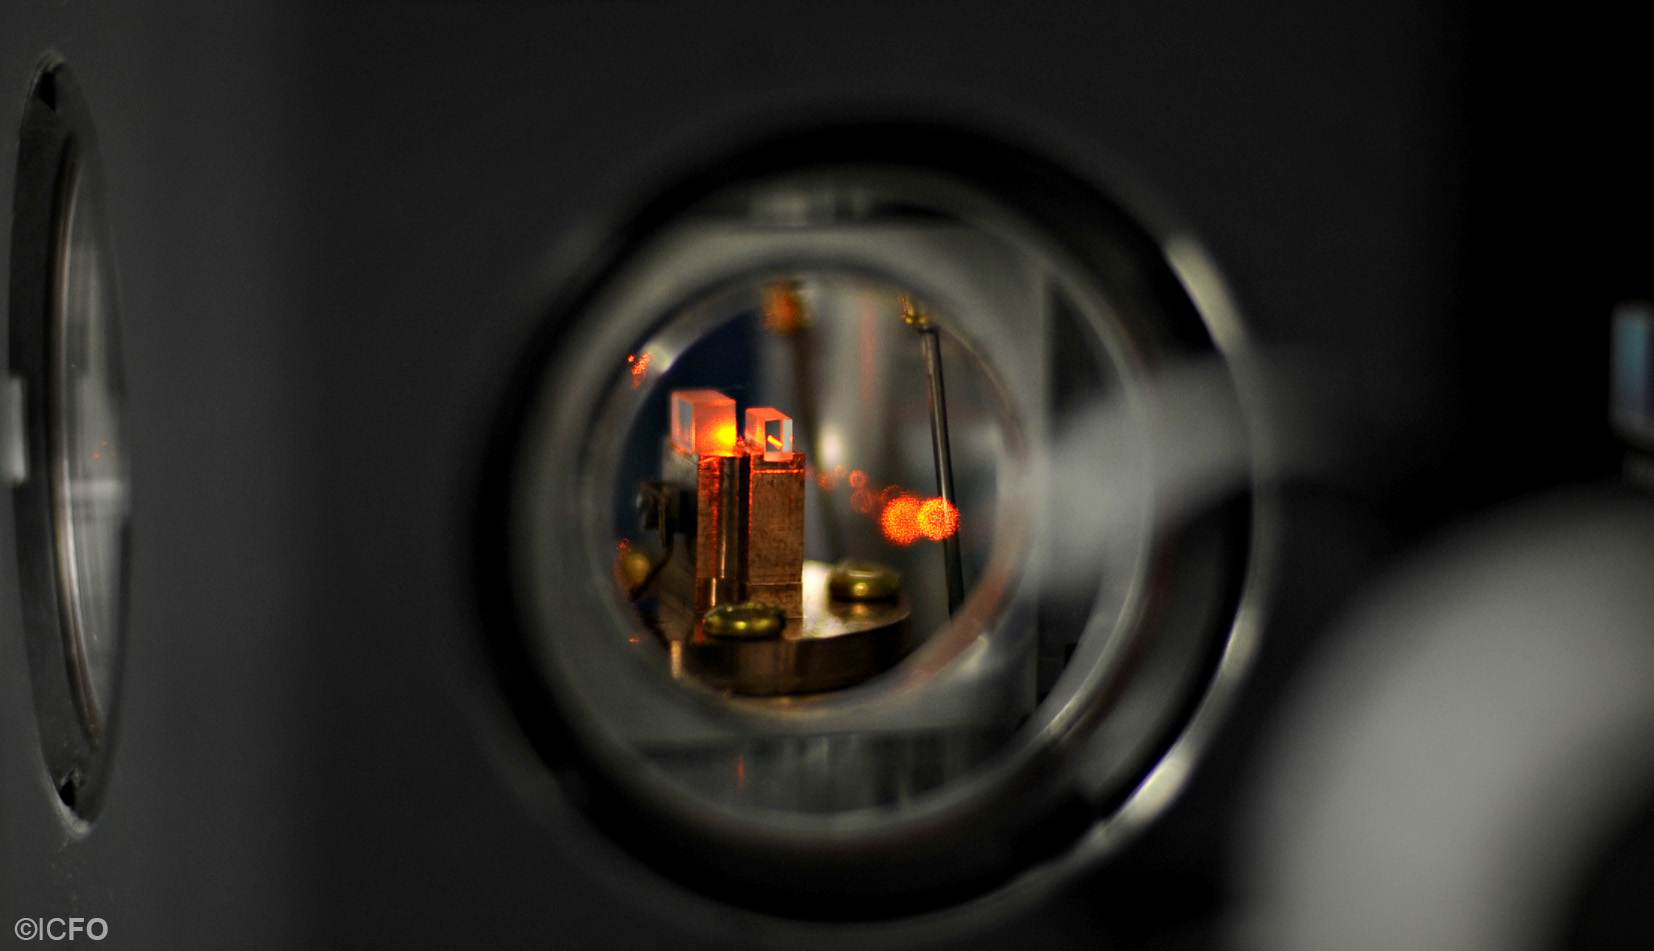 Quantum memory placed at the ICFO lab